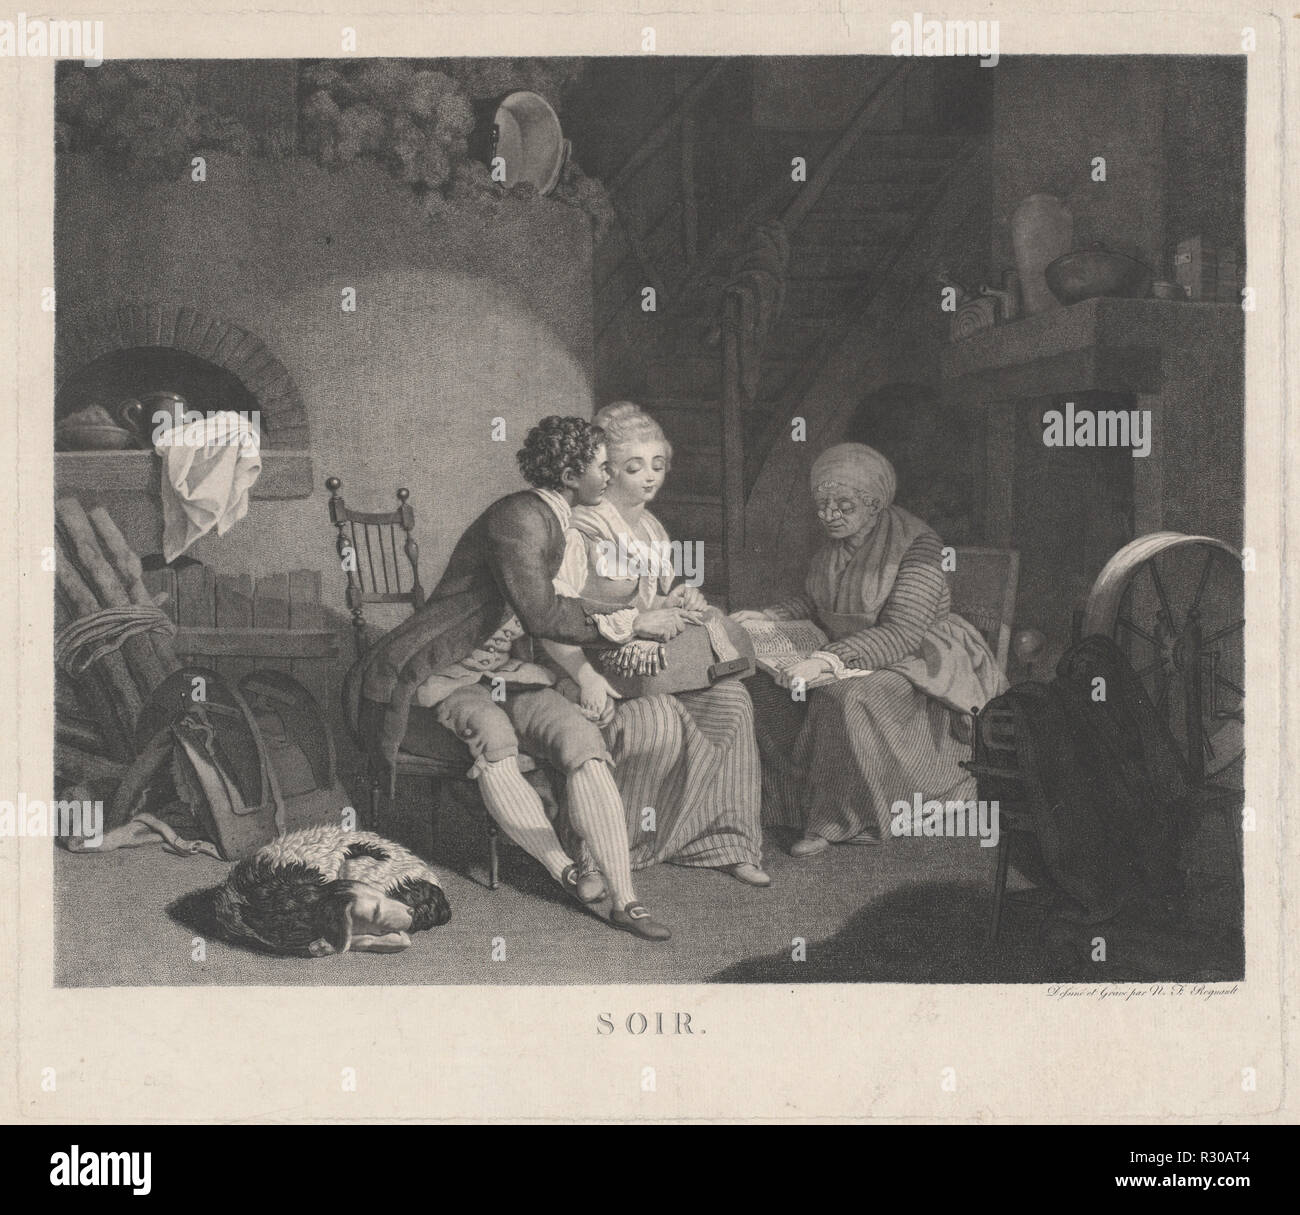 Soir (Evening). Dated: 1780s. Dimensions: plate: 42.2 × 48.6 cm (16 5/8 × 19 1/8 in.)  sheet: 44.1 × 54.8 cm (17 3/8 × 21 9/16 in.). Medium: etching and stipple etching on laid paper. Museum: National Gallery of Art, Washington DC. Author: Nicolas Francois Regnault. Stock Photo